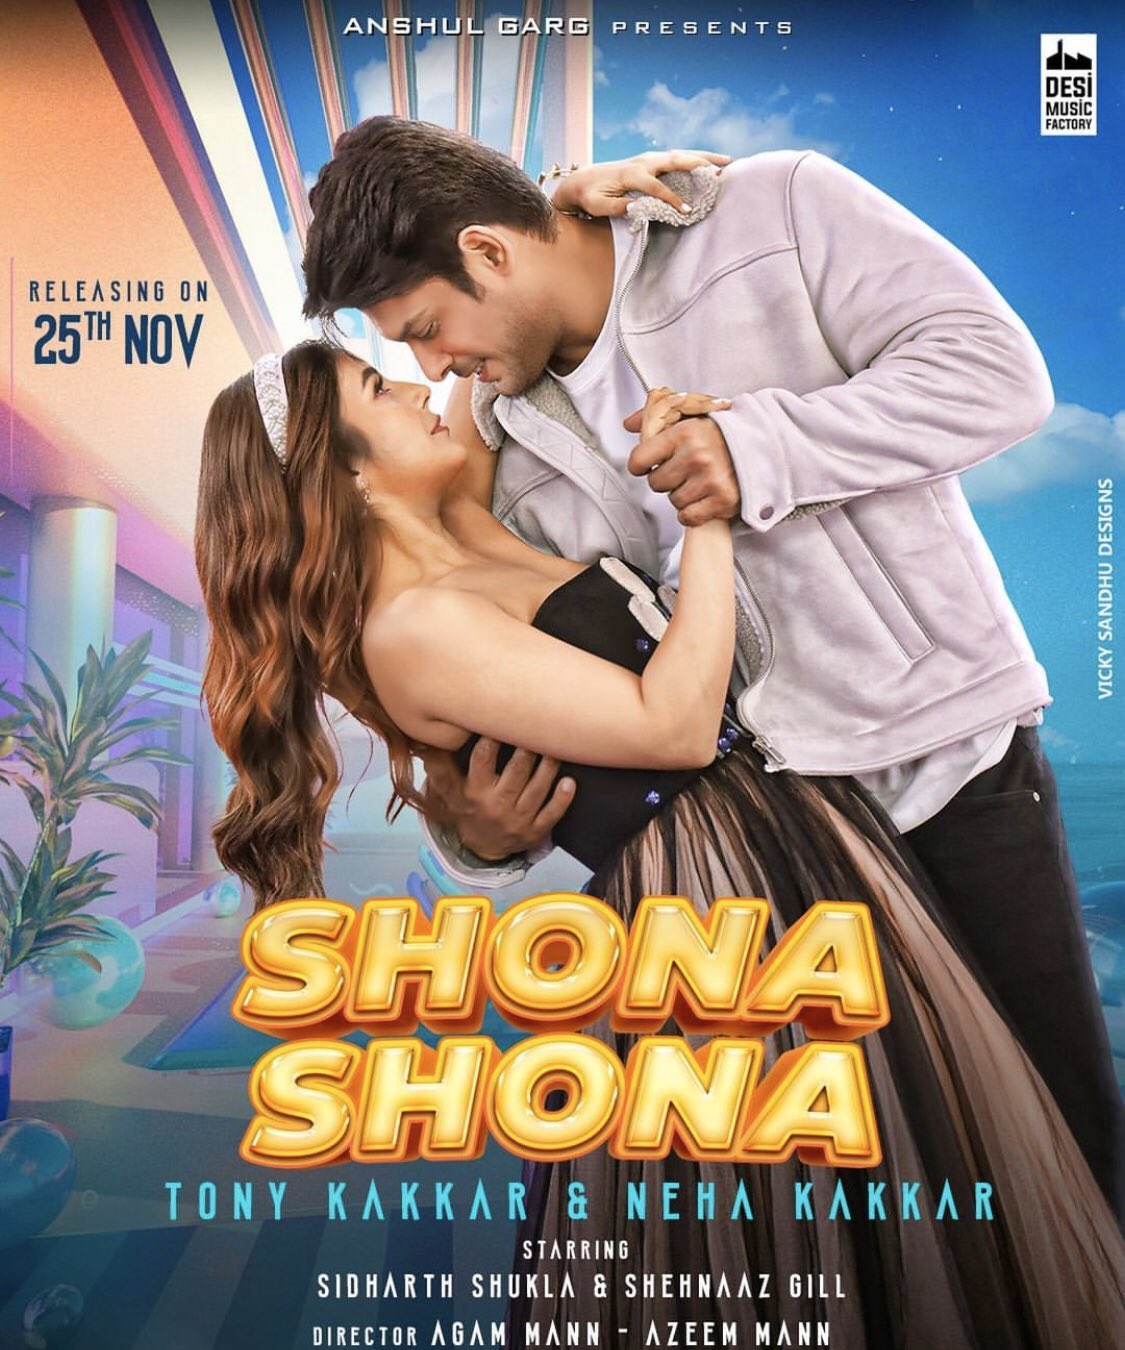 Shona Shona By Tony Kakkar & Neha Kakkar Hindi Full Music Video 1080p HDRip Download